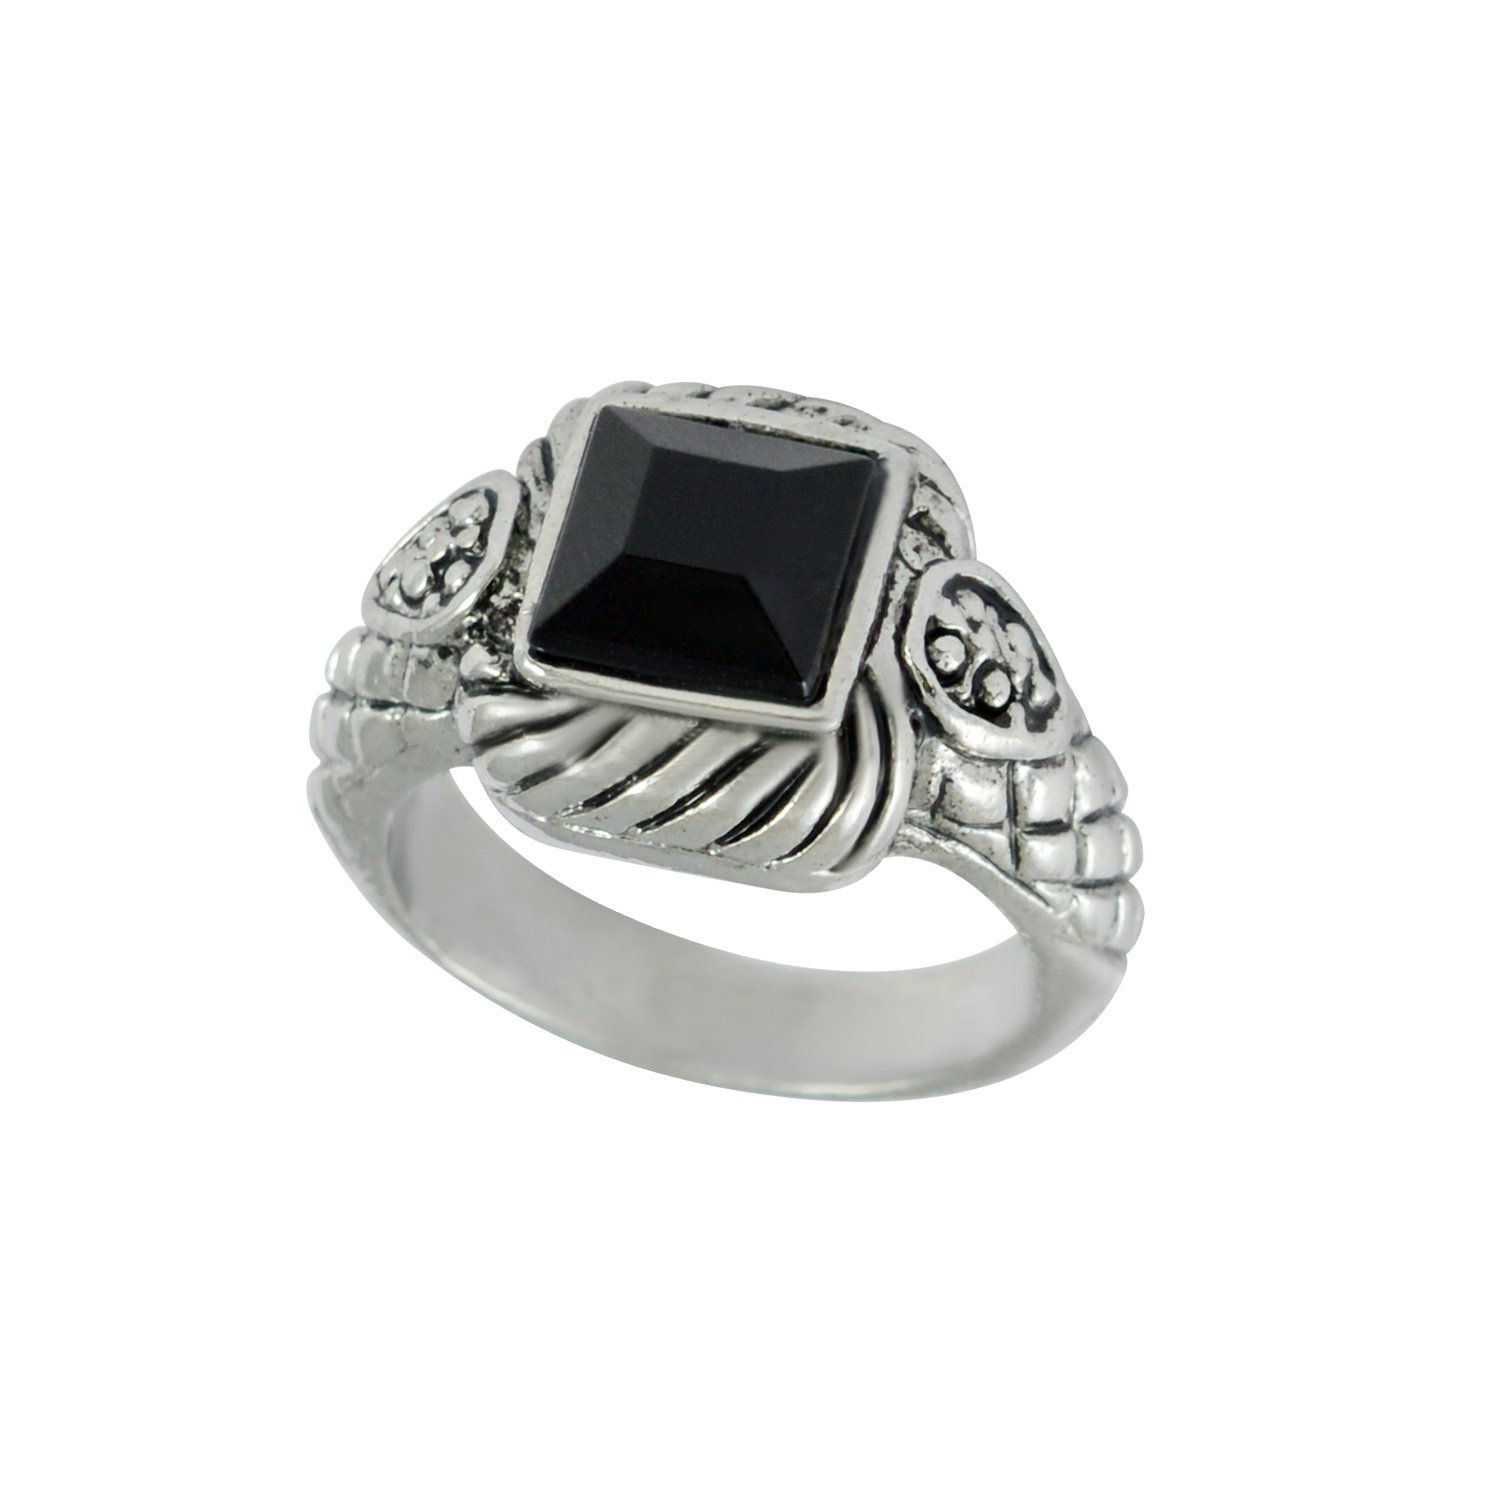 Sarah Black Stone Finger Ring for Men Silver Amazon Jewellery